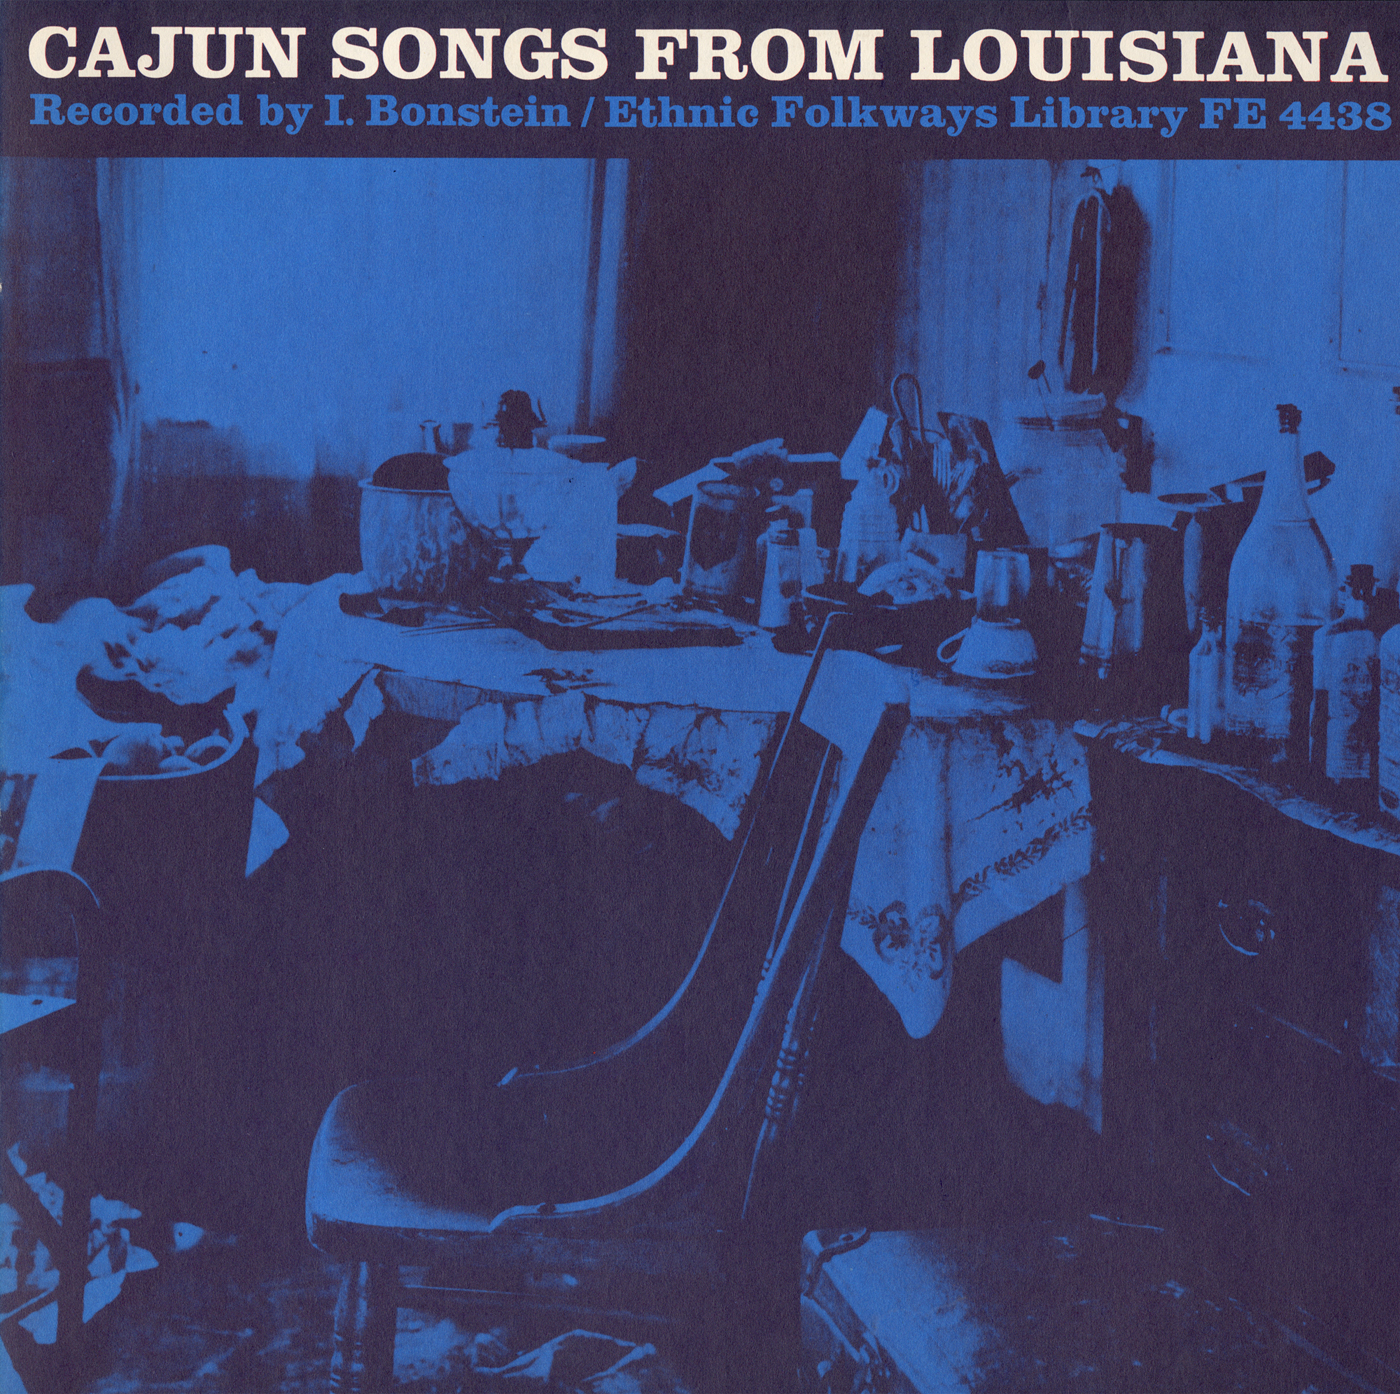 louisiana cajun music youtube - HD 1400×1394